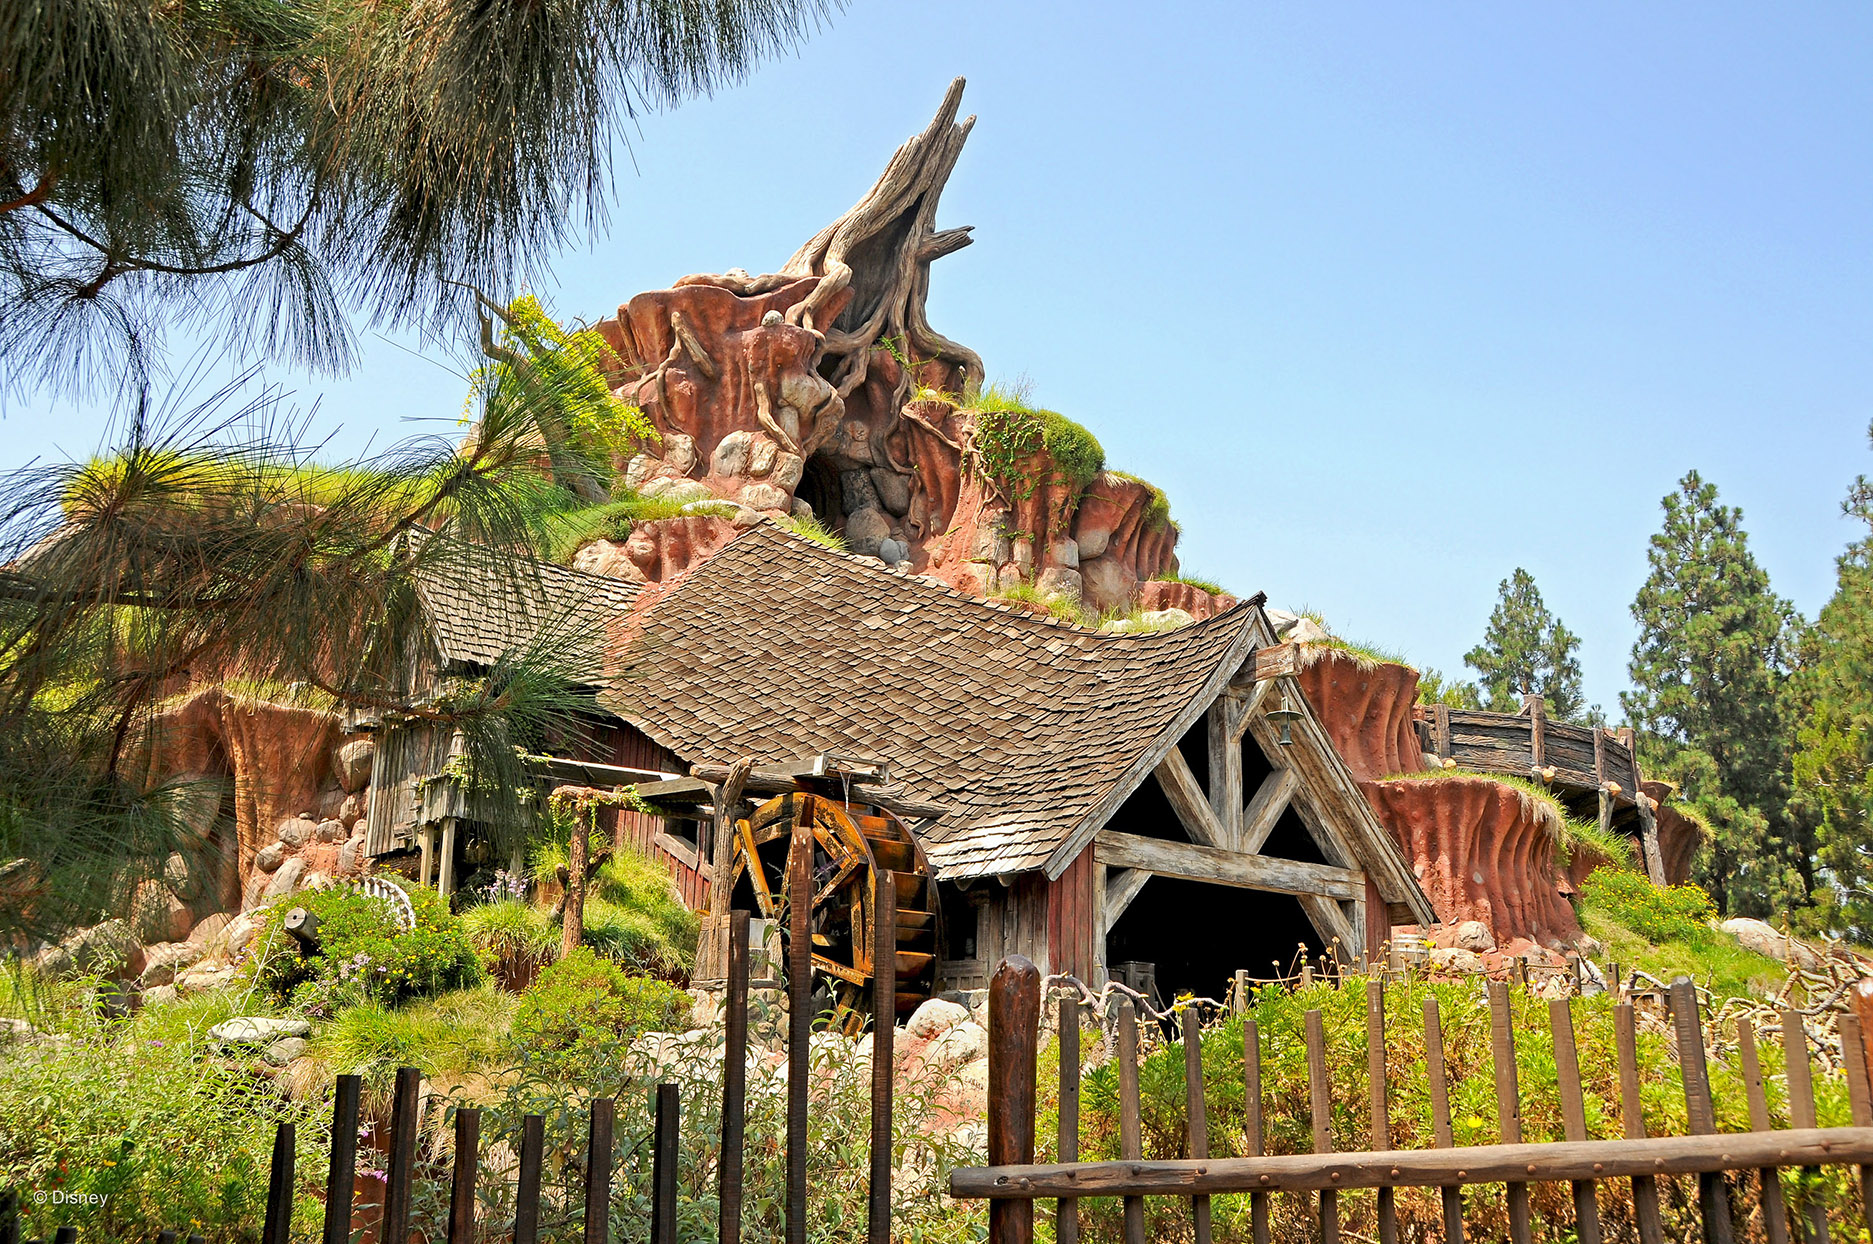 Red rock mountain and wild-west era buildings and fences around Splash Mountain Ride at Disneyland